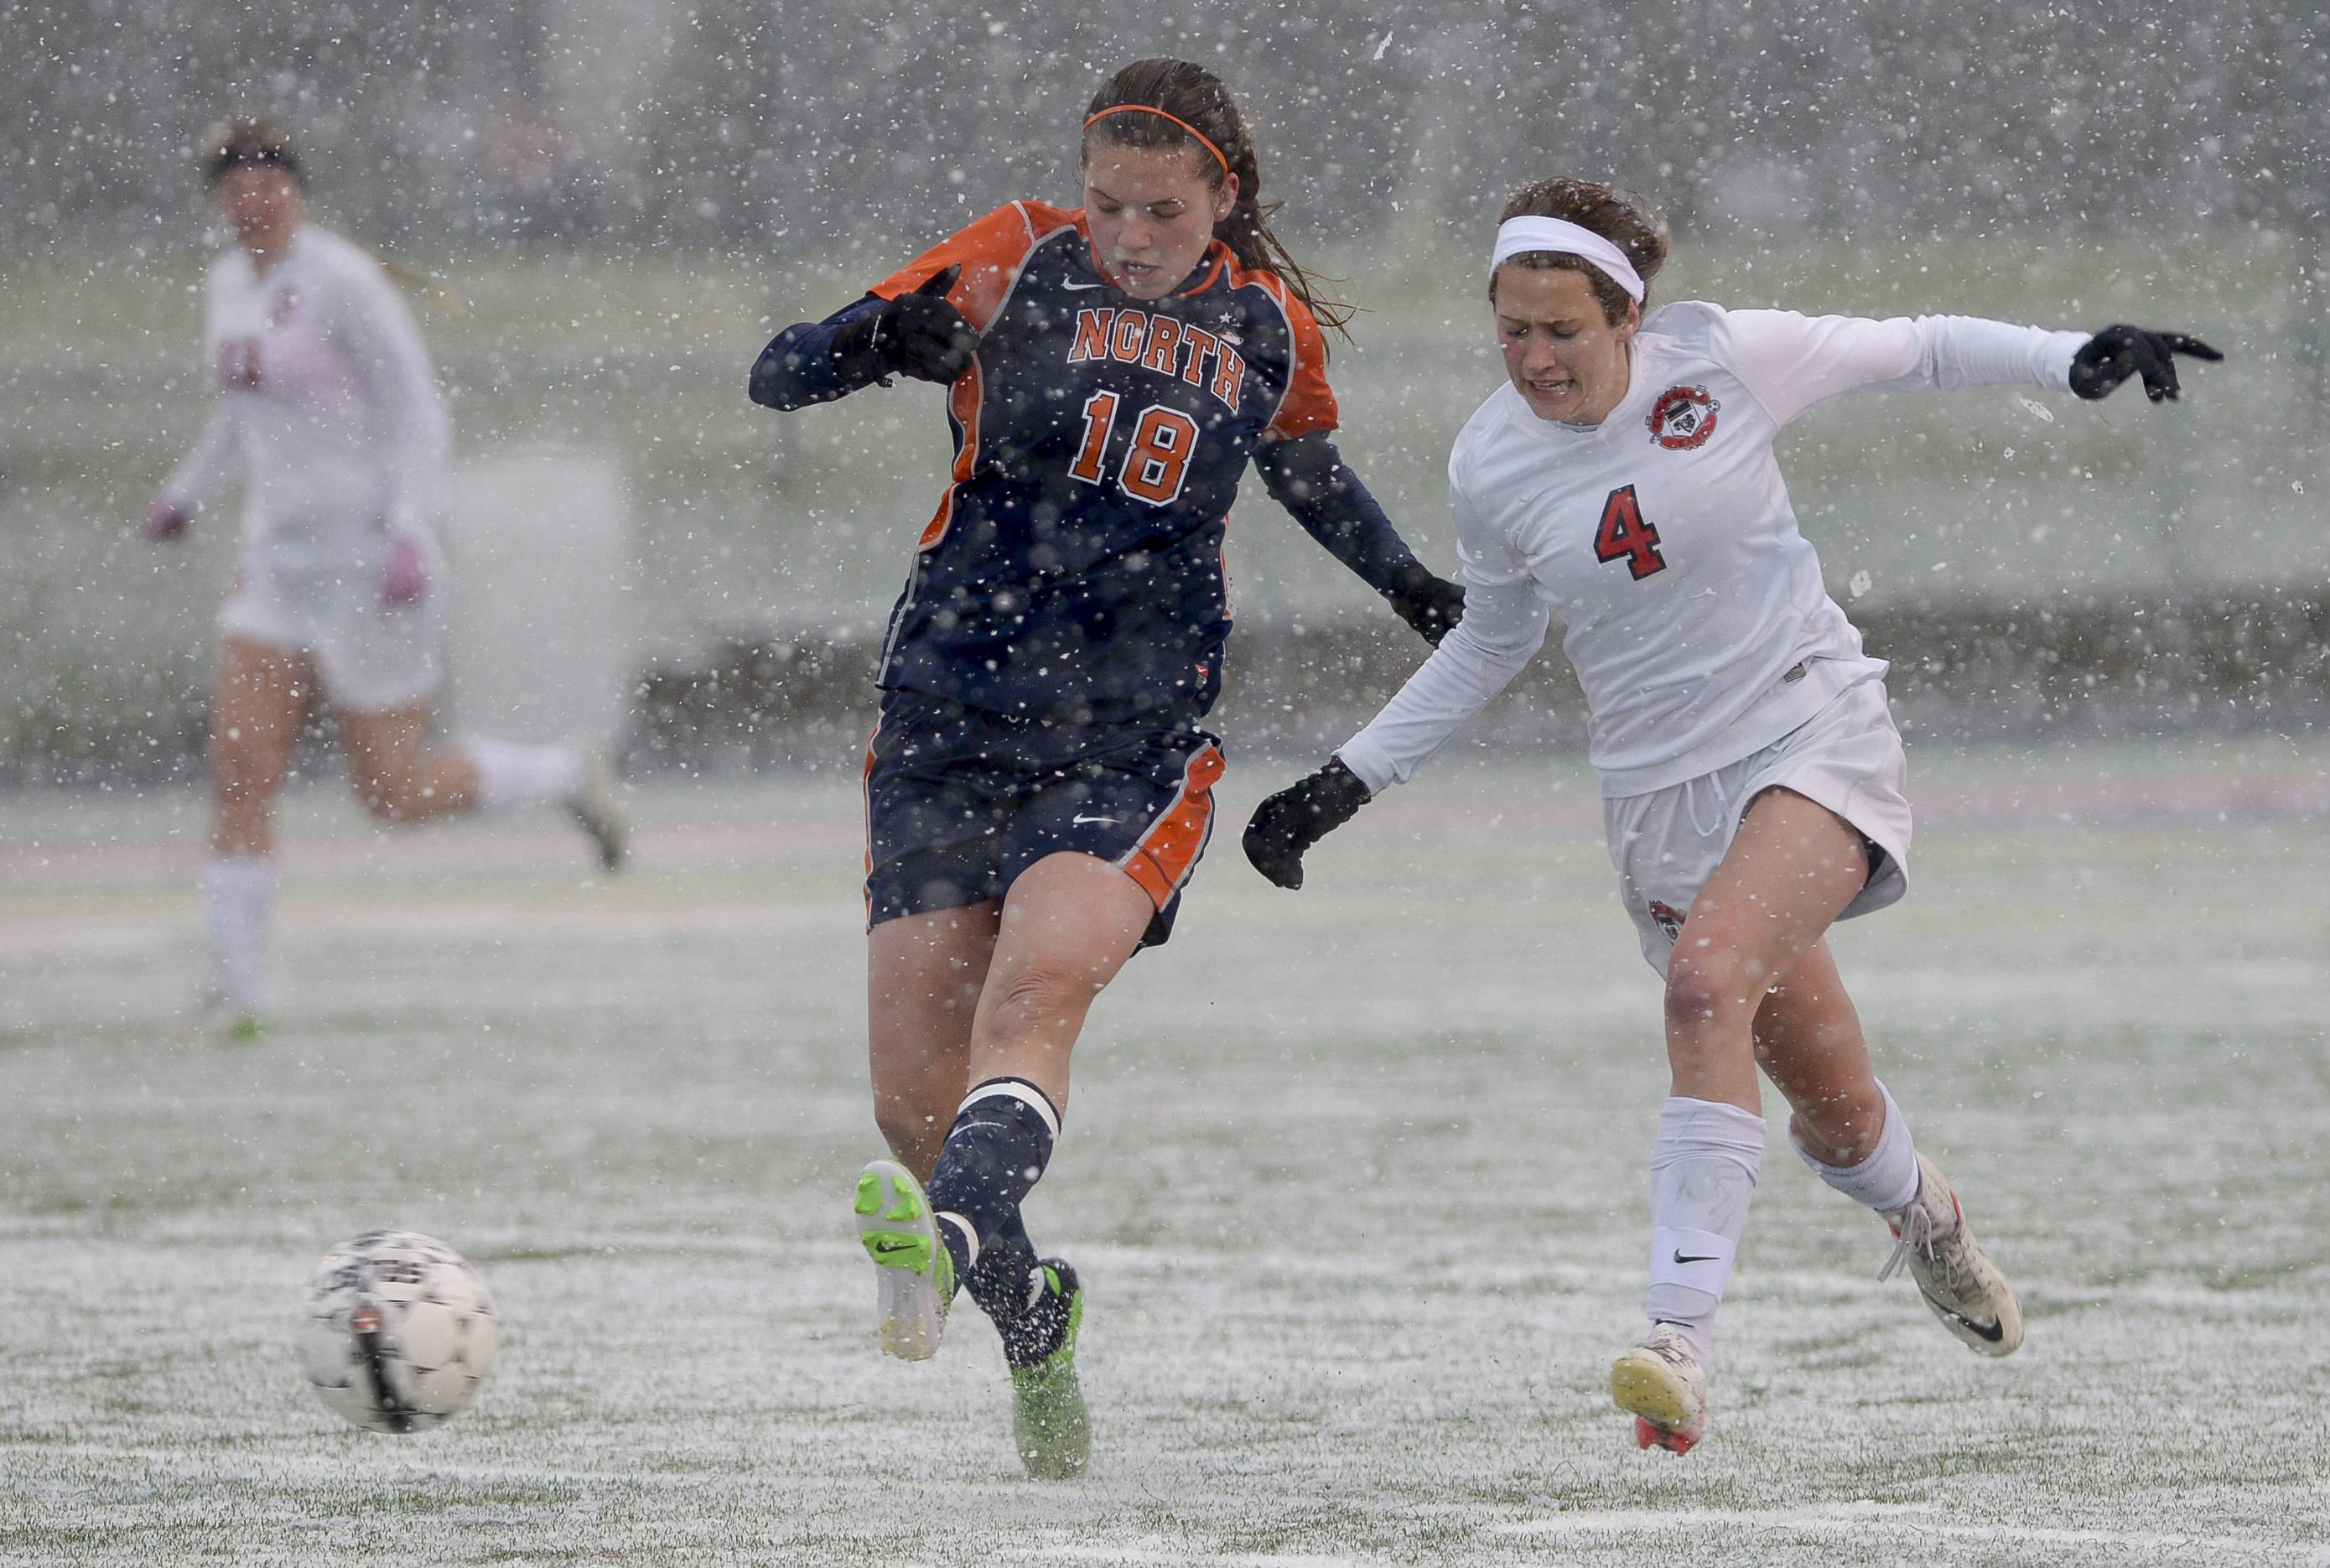 Naperville North's Morgan Krause and Glenbard East's Alex Ruffer chase down the ball, through heavy snow, during the Huskies 2-0 win over the Rams in Lombard Monday.